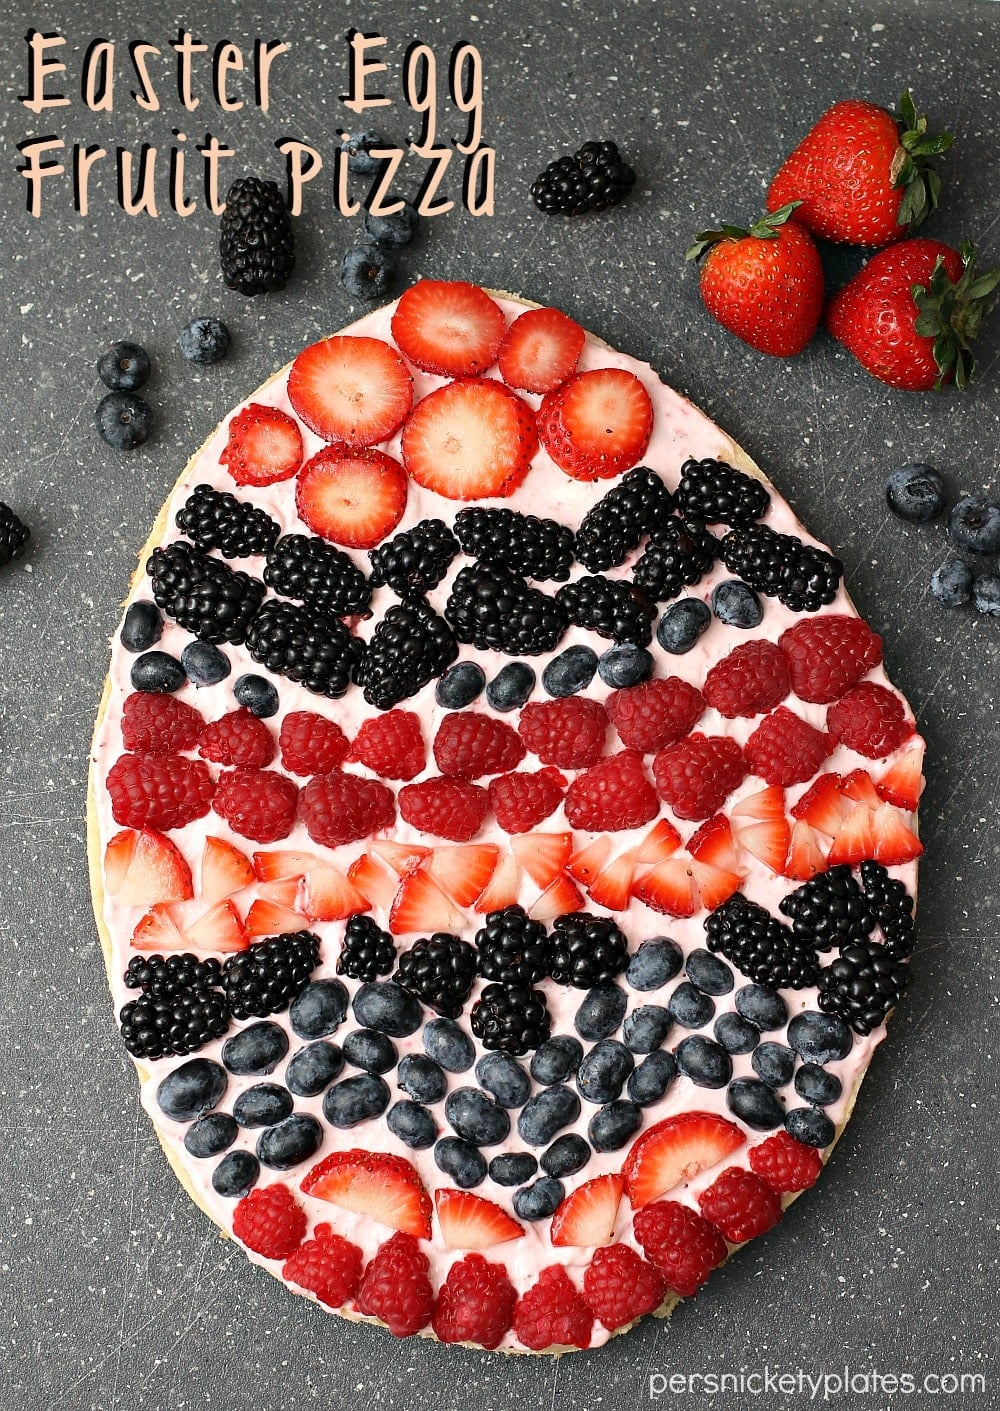 This Easter Egg fruit pizza is the perfect Easter treat for an Easter brunch!